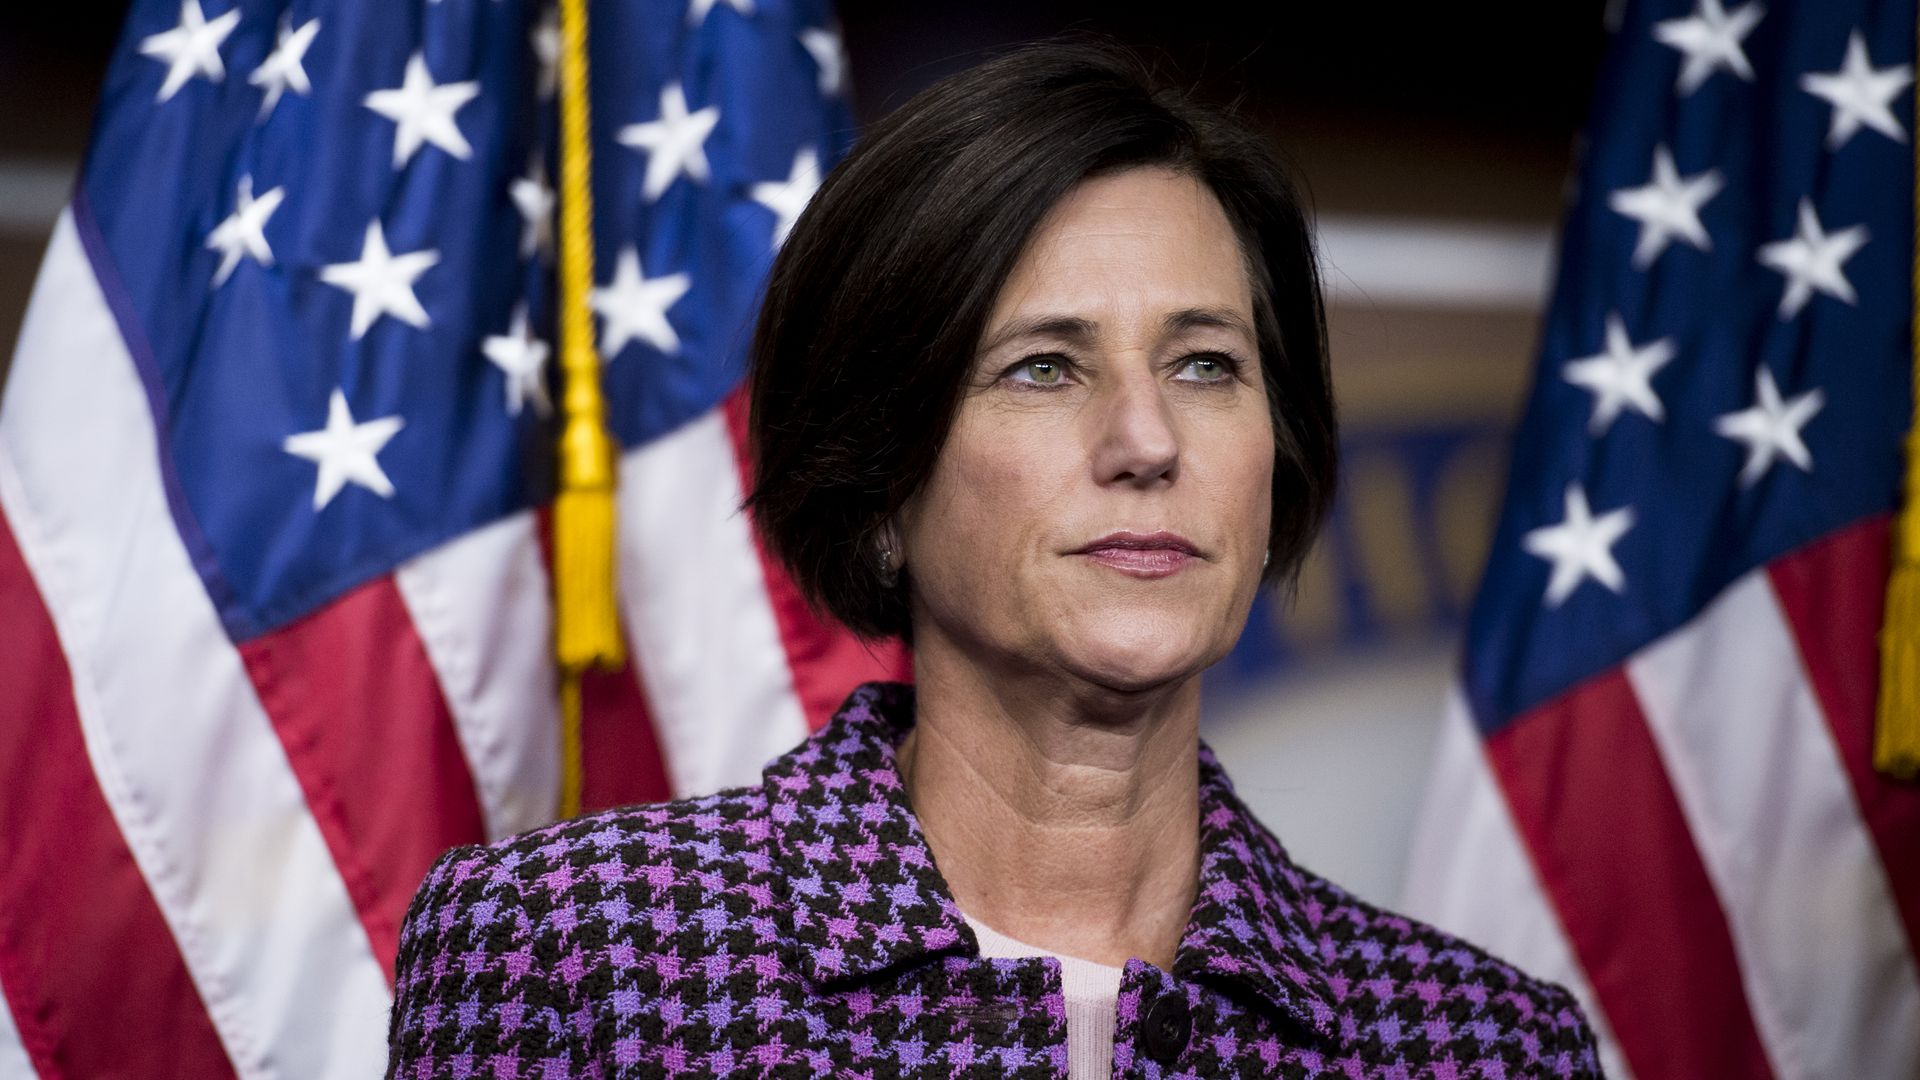 Mimi Walters in a purple plaid jacket standing in front of two American flags